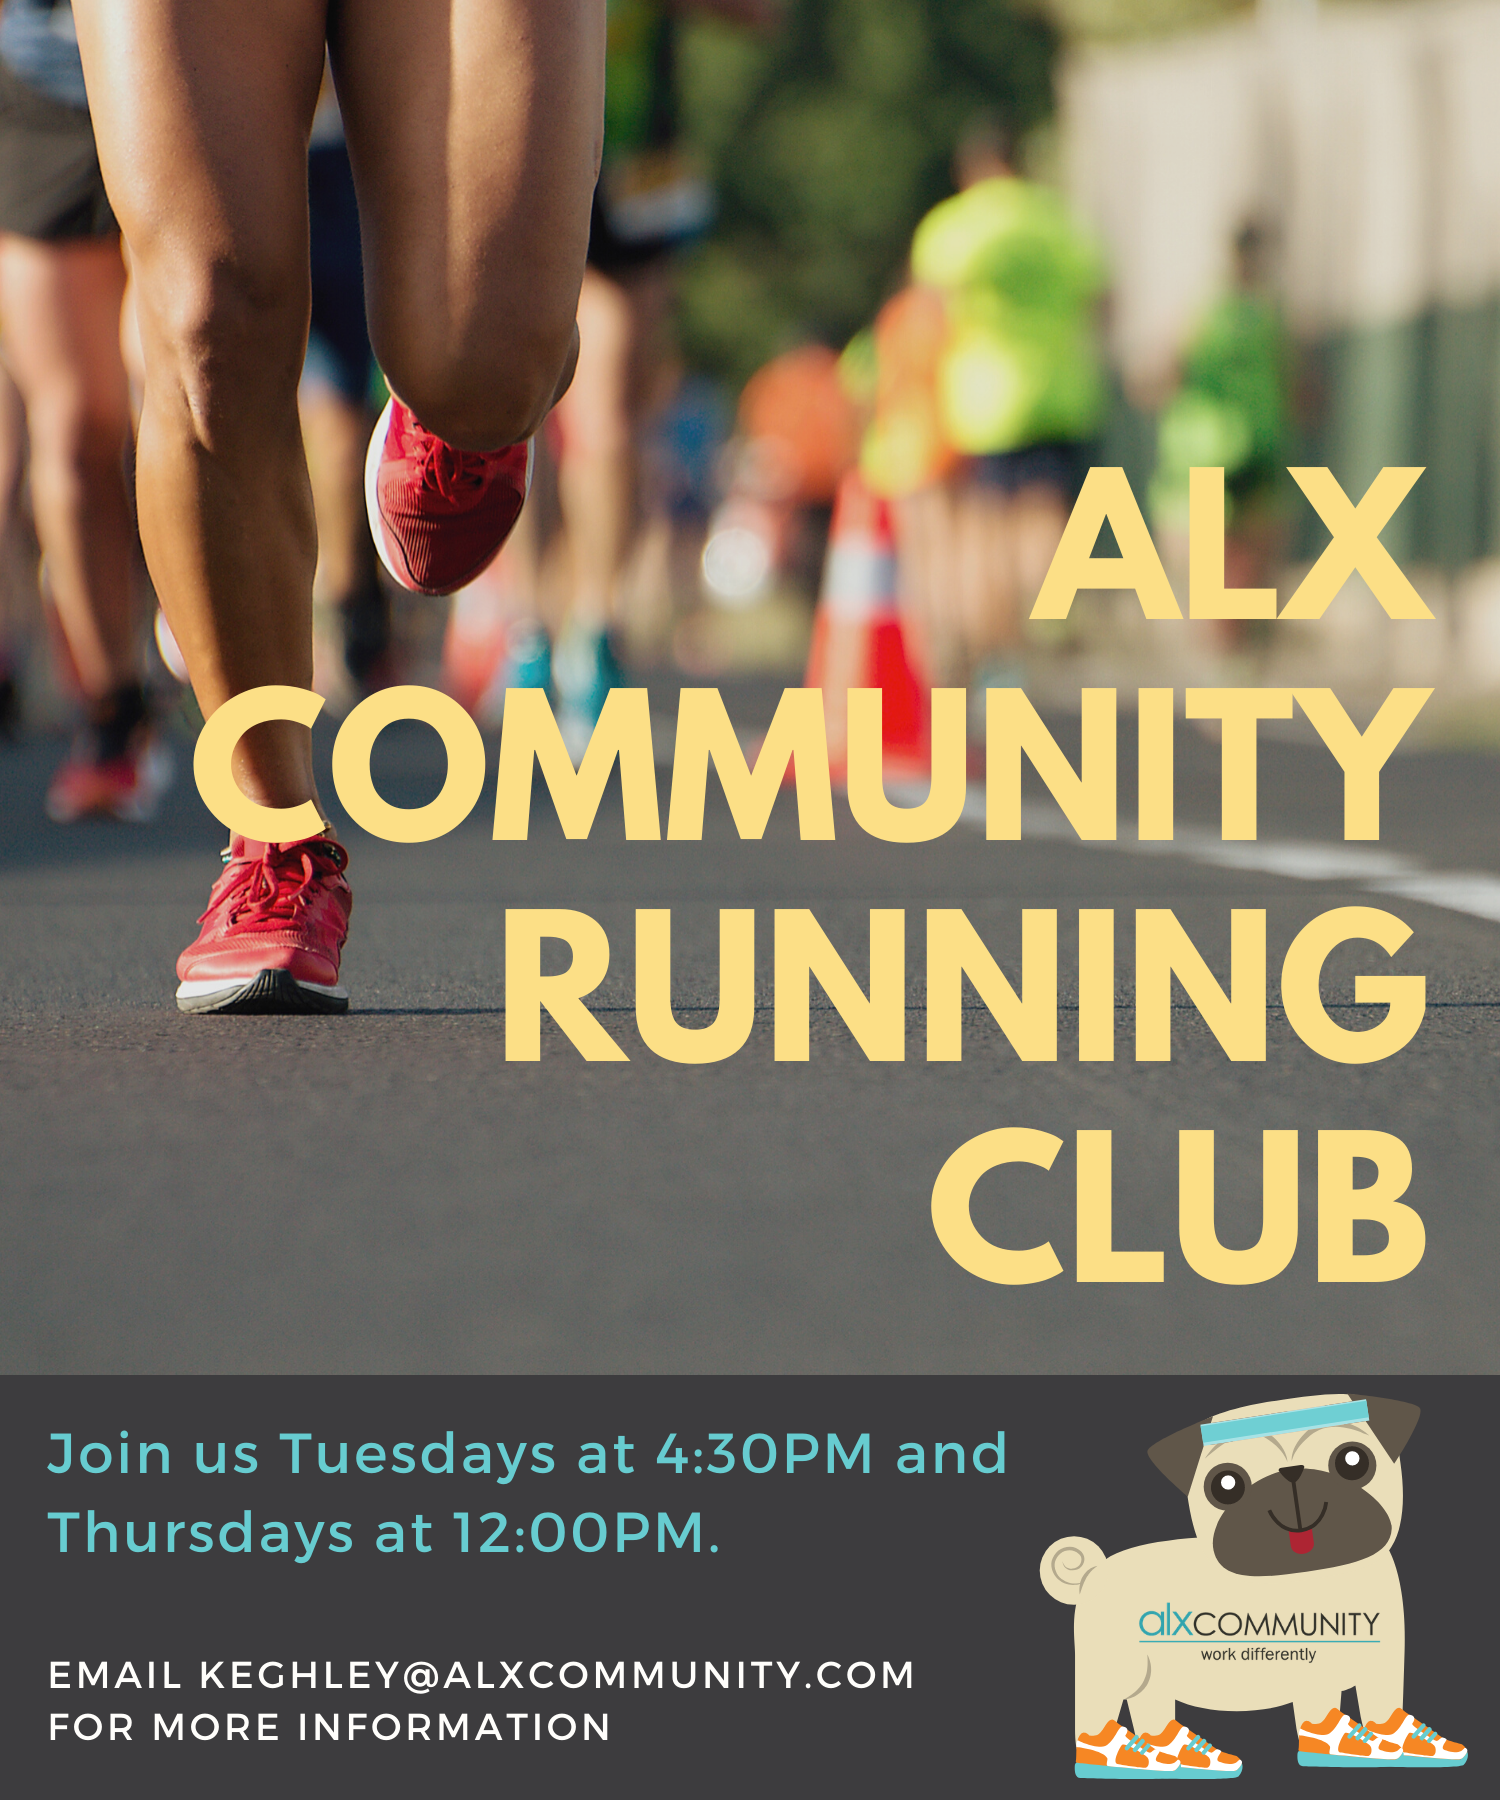 ALX Community Running Club